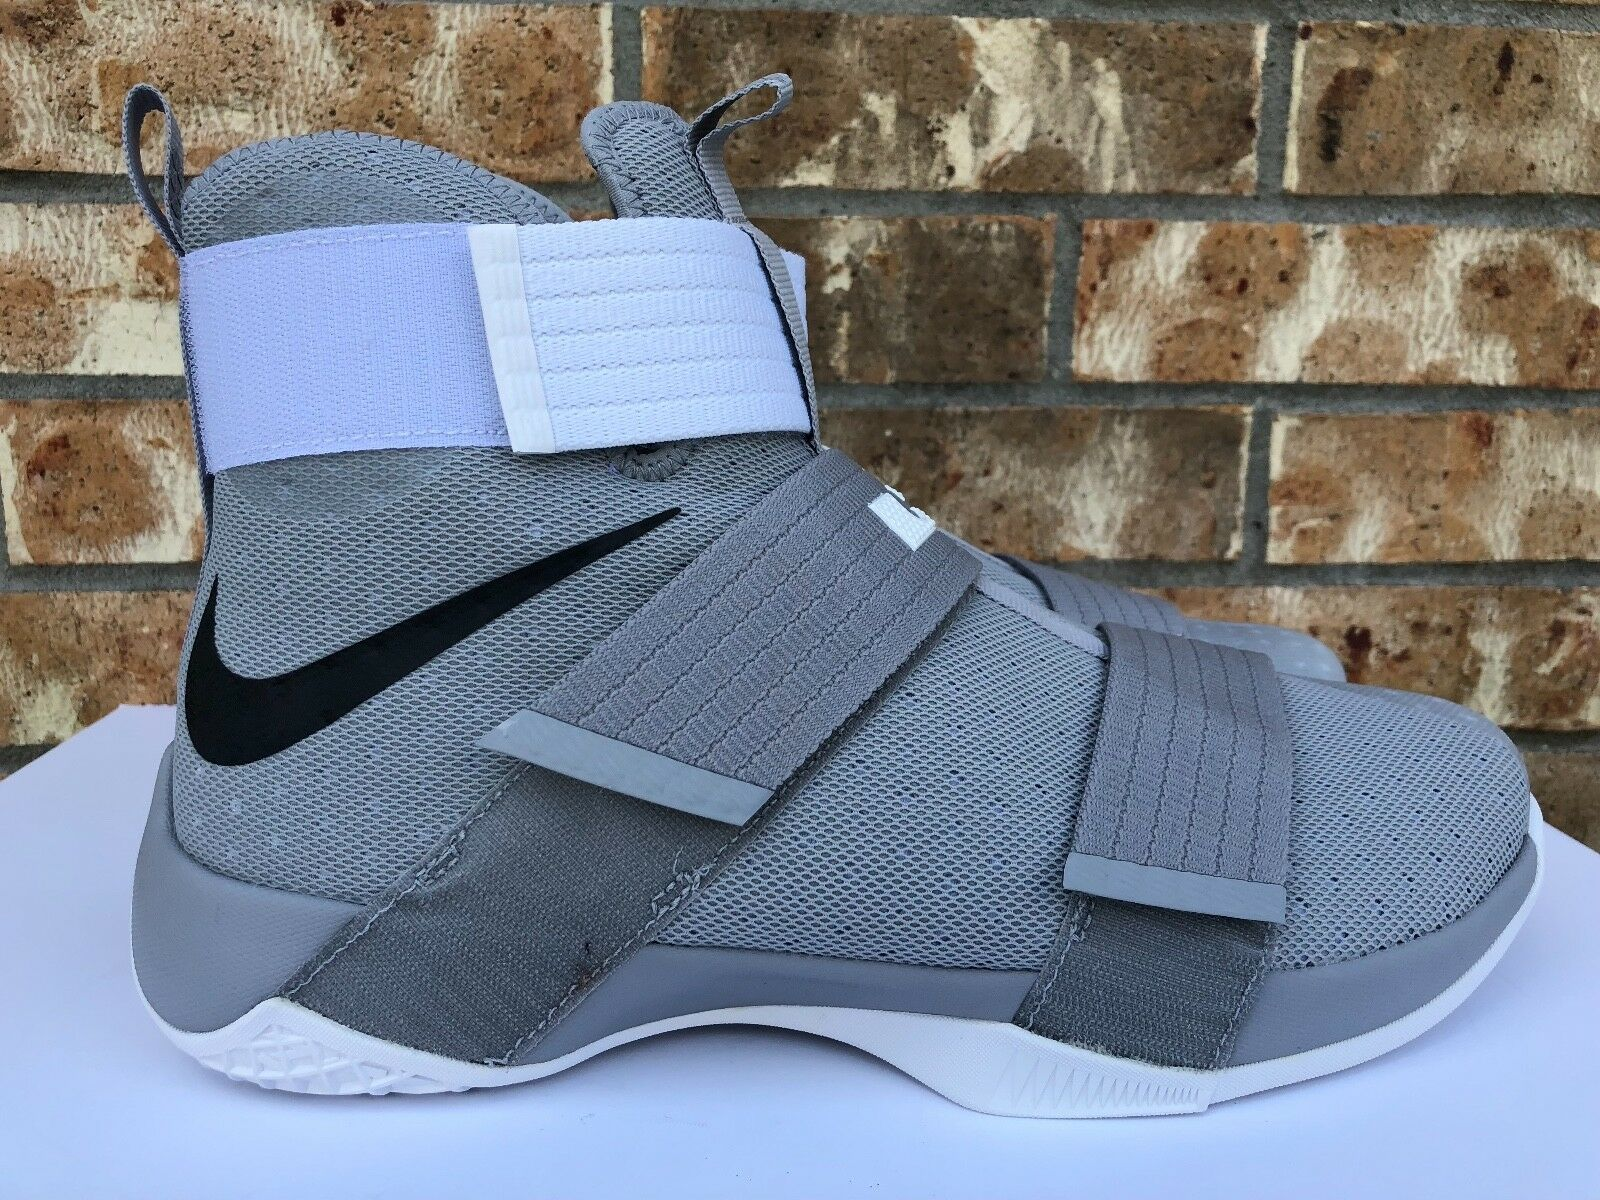 Hommes 10 Nike LeBron Soldier X 10 Hommes TB Promo Basketball Chaussures Wolf Gris 856489-002 d9b472